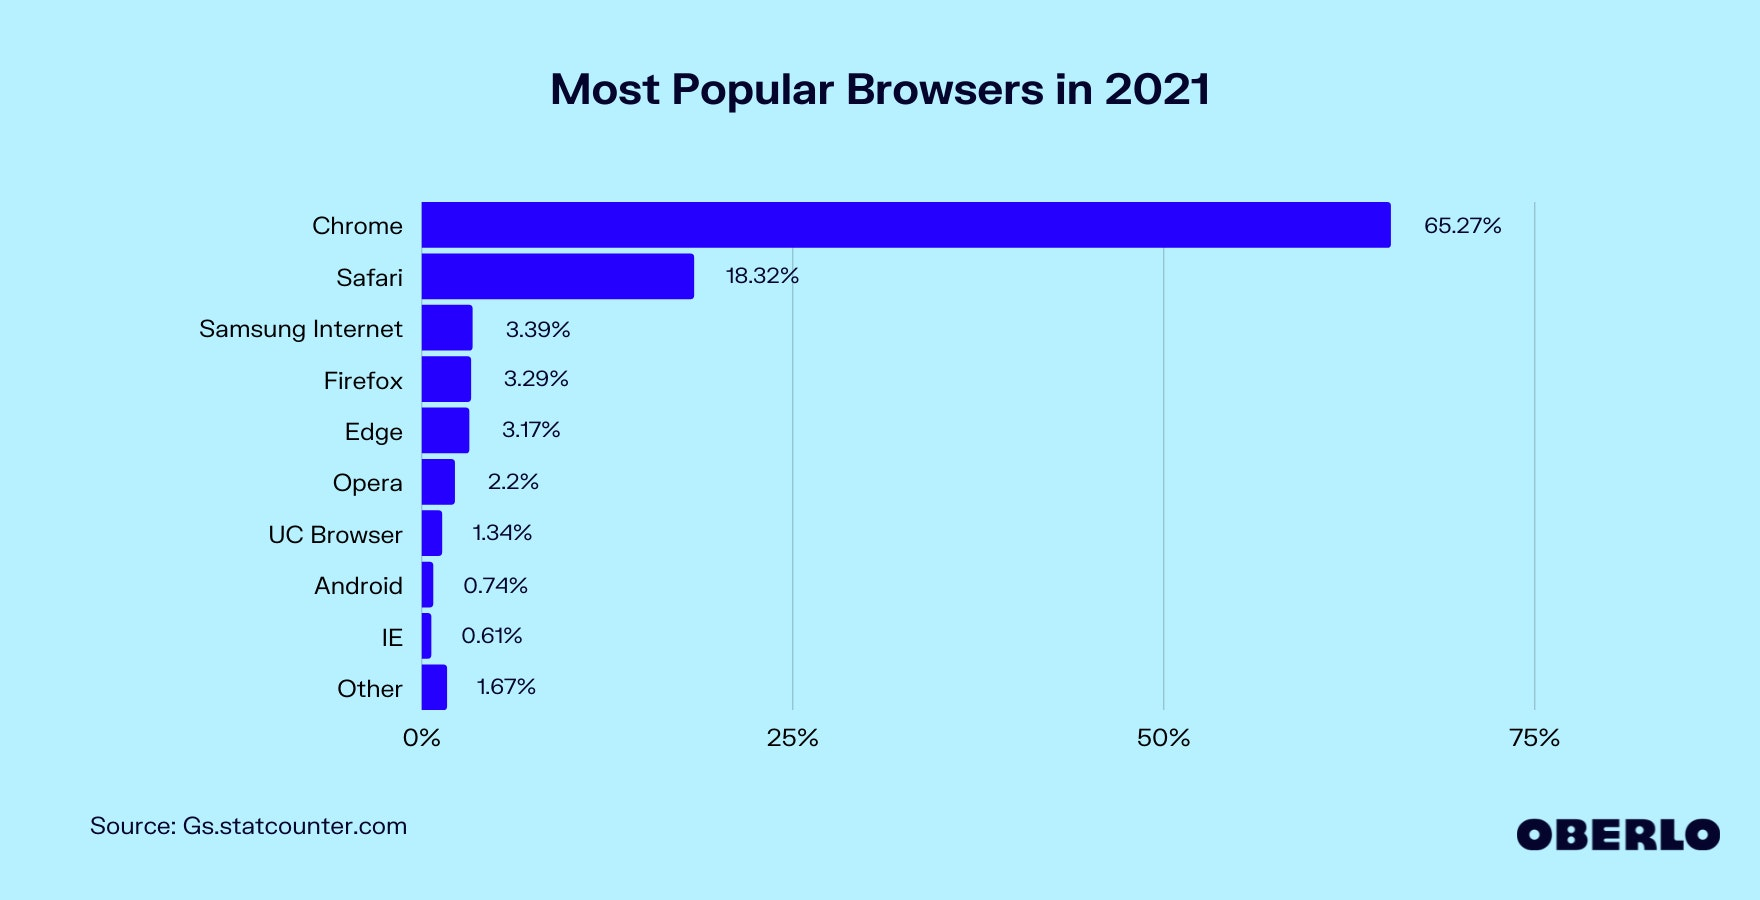 Chart of Most Popular Web Browsers in 2021